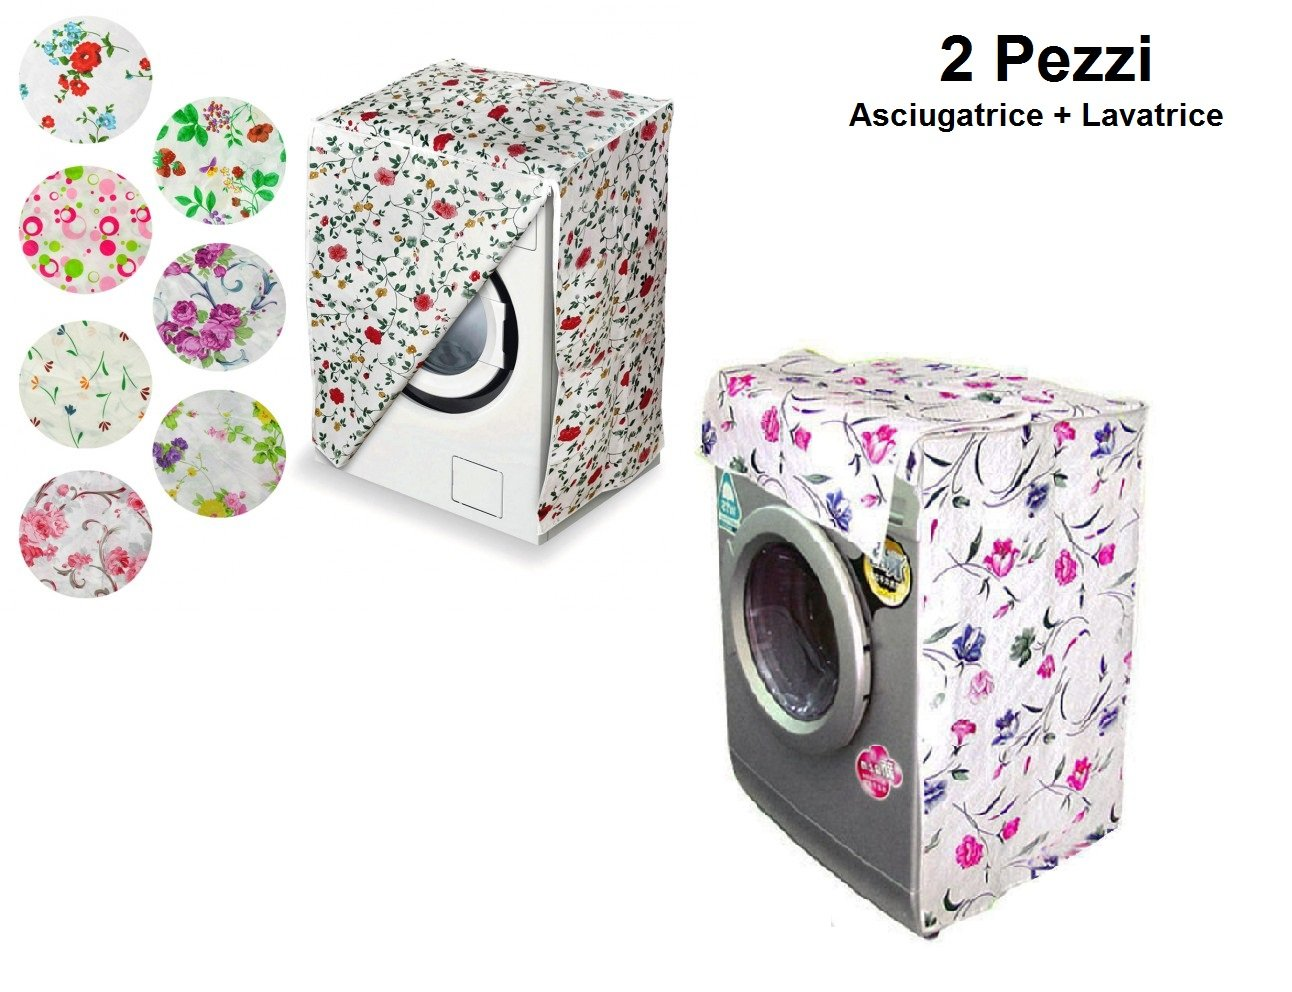 Ducomi Turbo Wash - Cover for Front-Loading Washing Machines and Dryer - Prevents the Deterioration of the Machine - 82 x 62 x57 cm (1 Pezzo, Flowers)